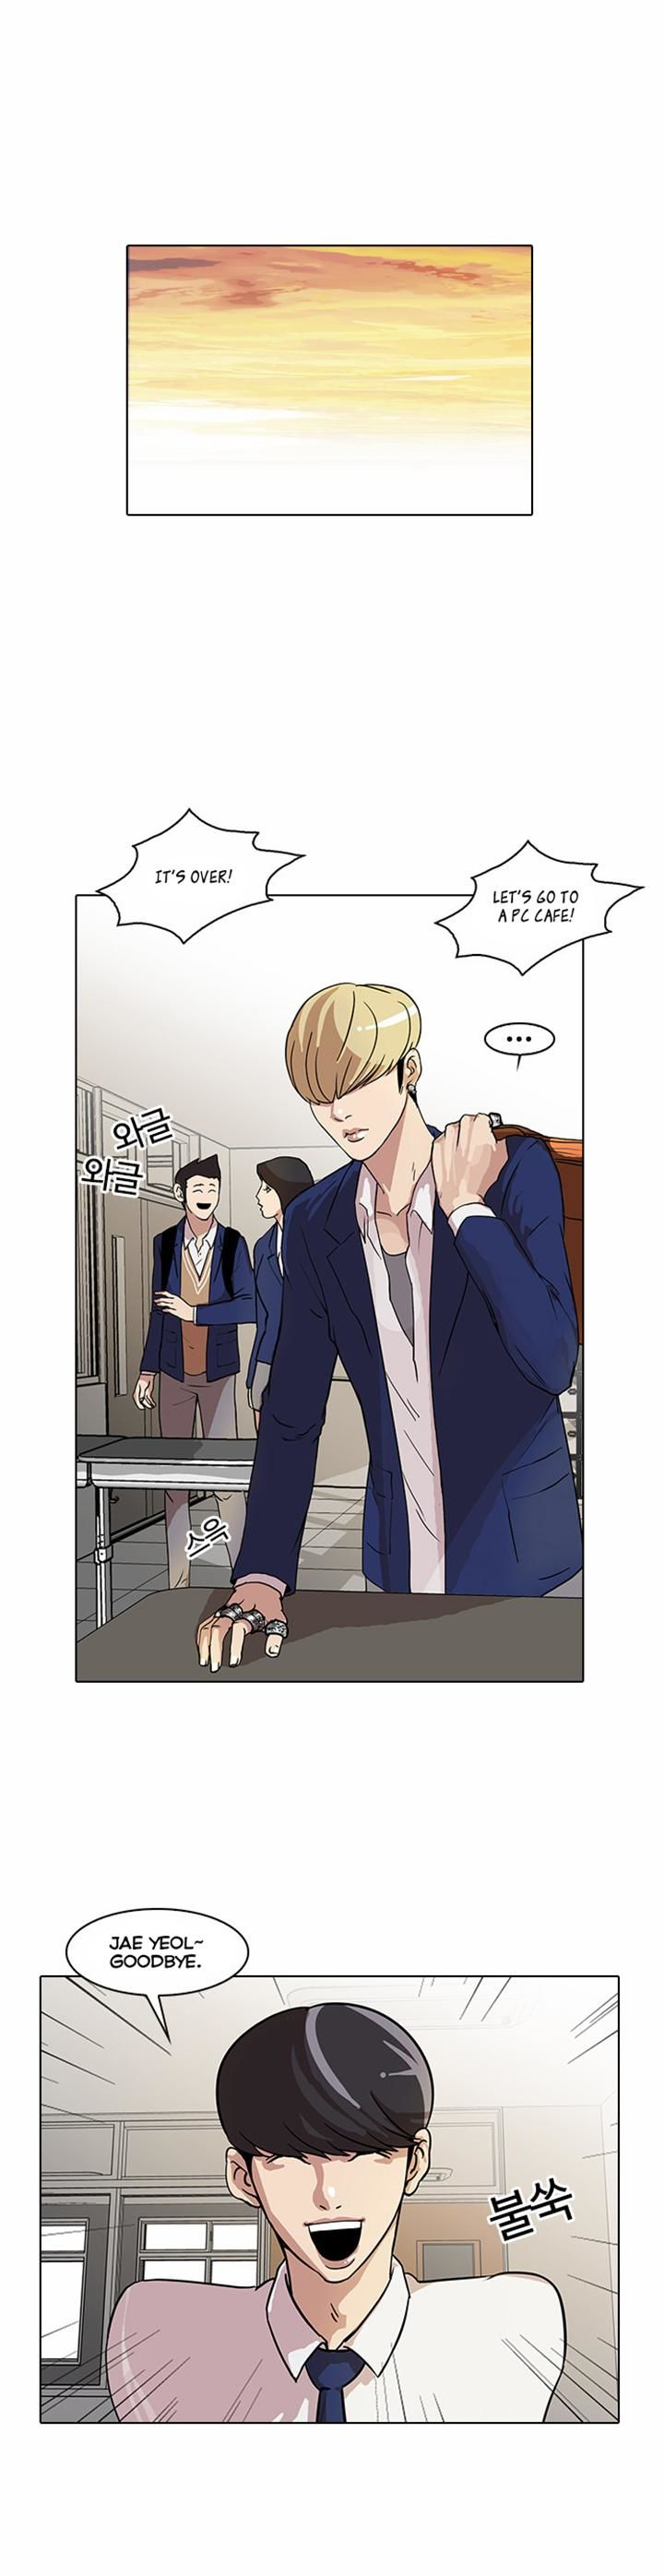 Lookism 20 Page 1